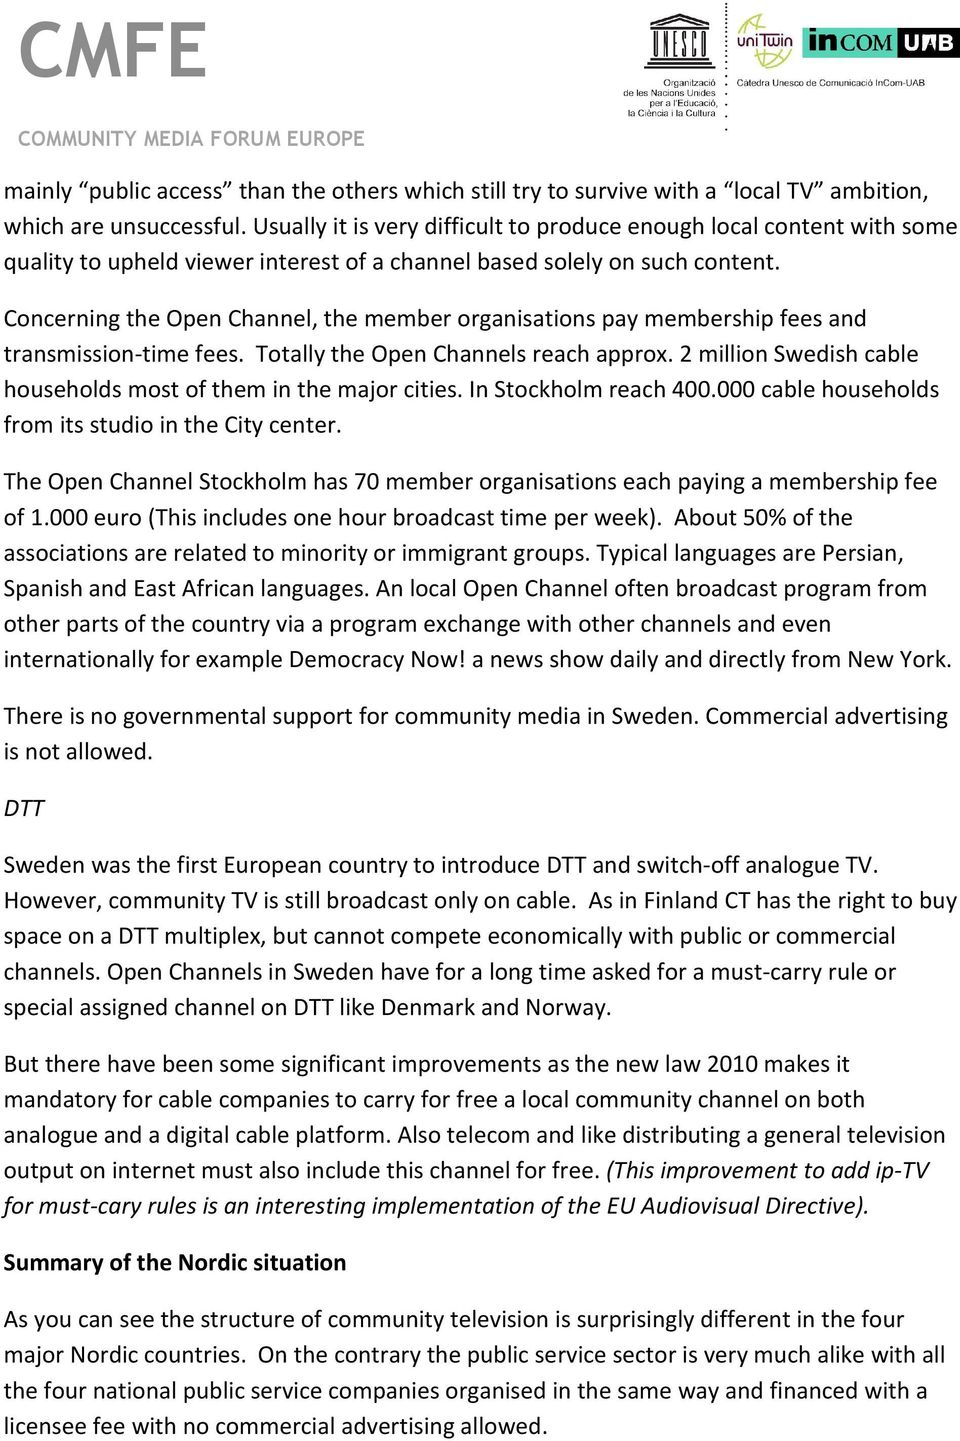 CMFE  Community TV and digitalisation in the Nordic